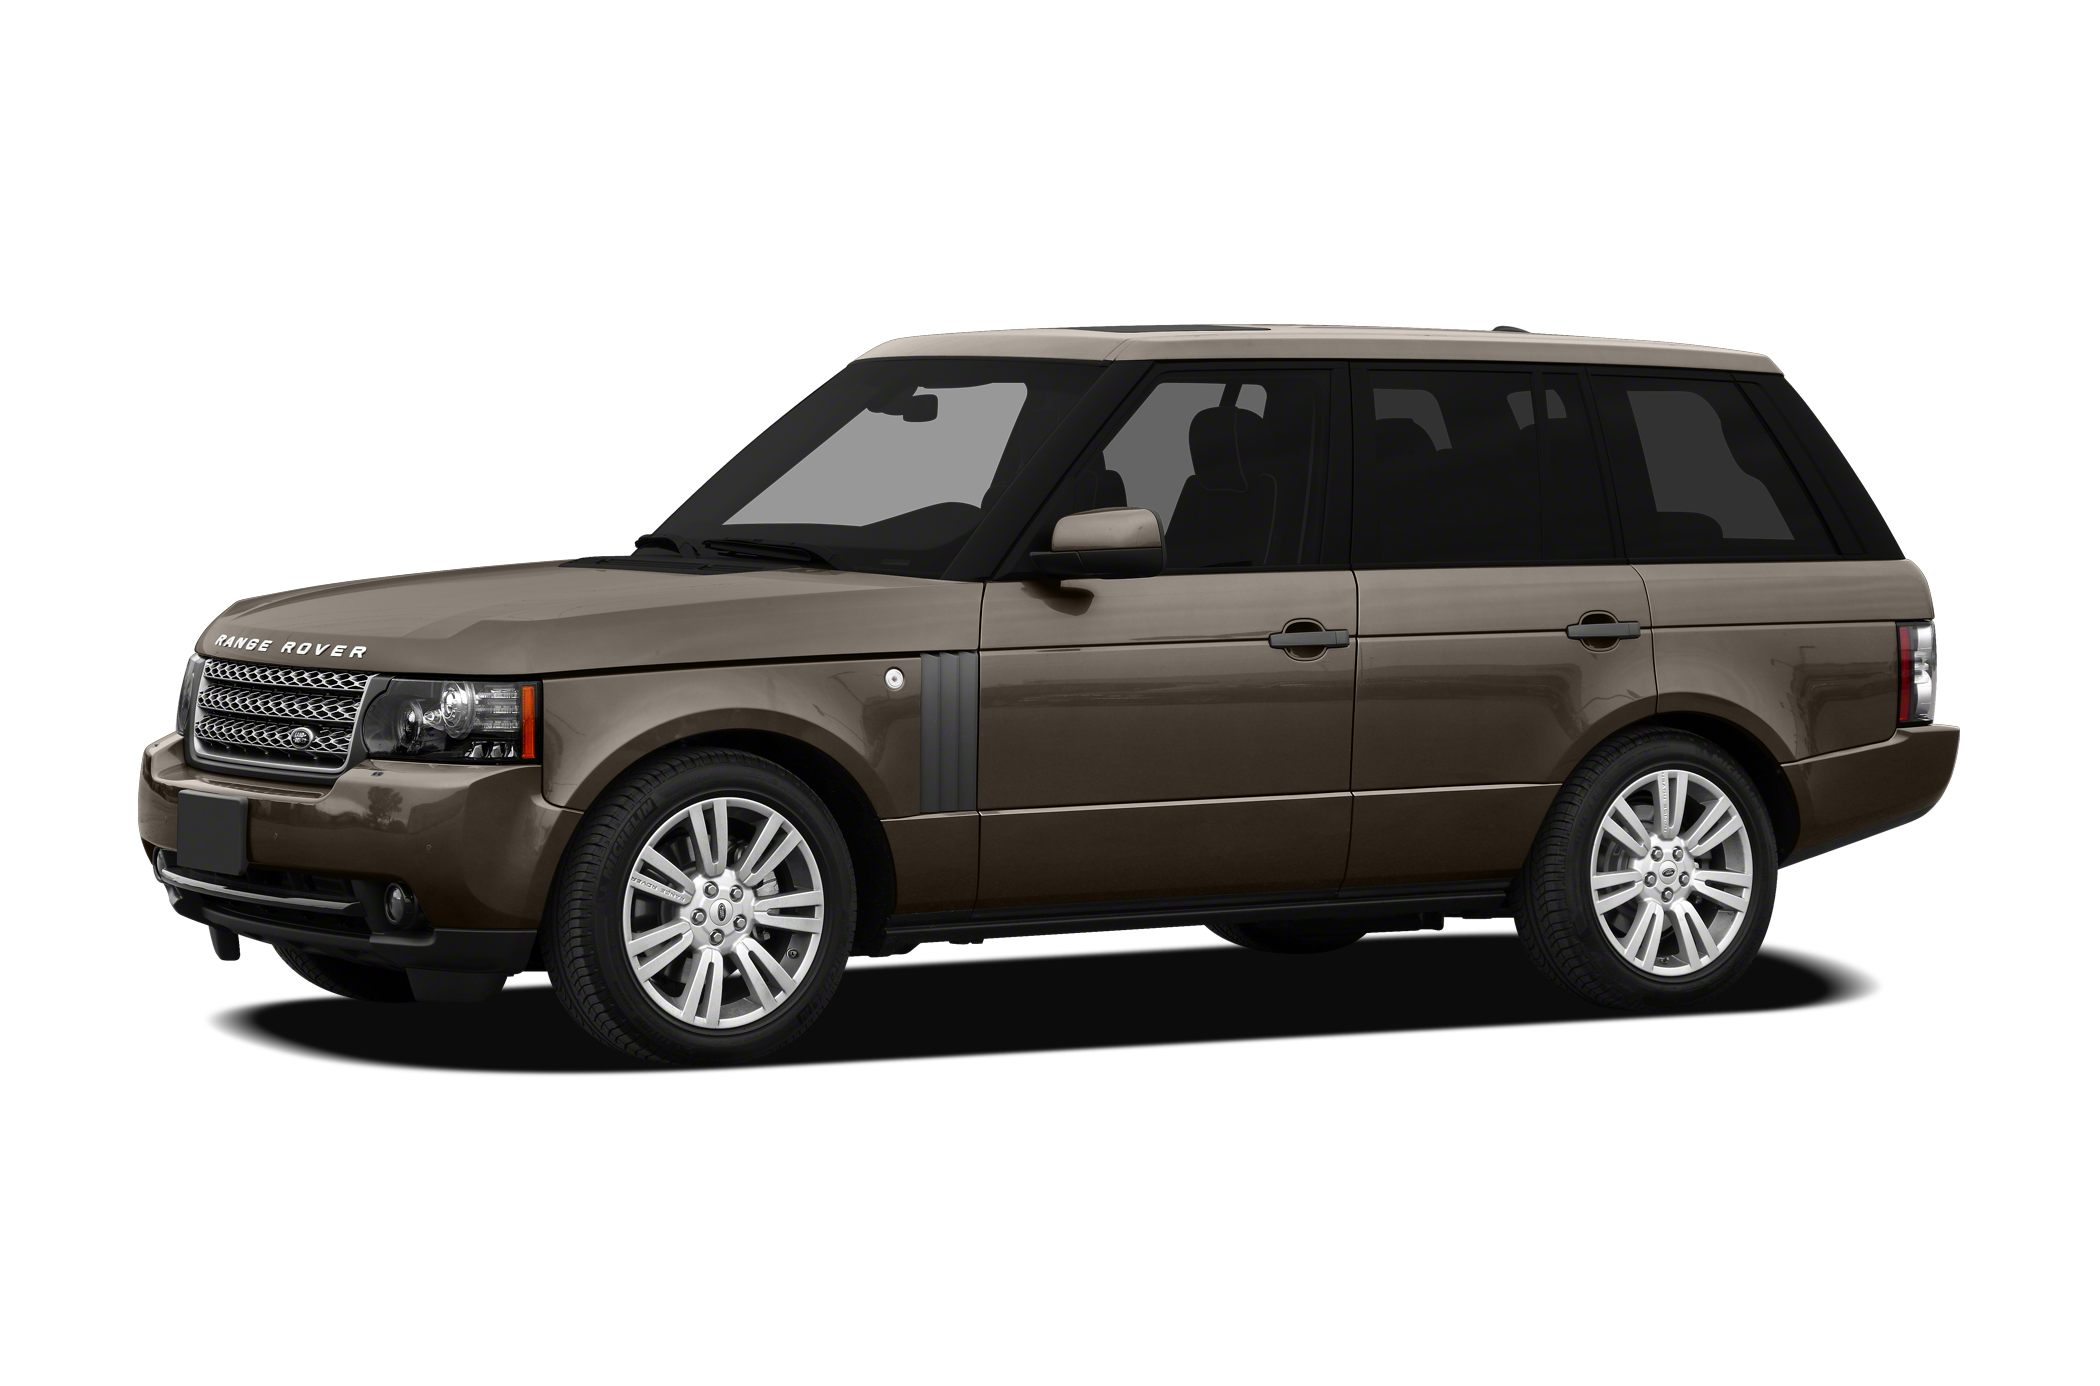 2011 Land Rover Range Rover HSE 4dr All wheel Drive Information